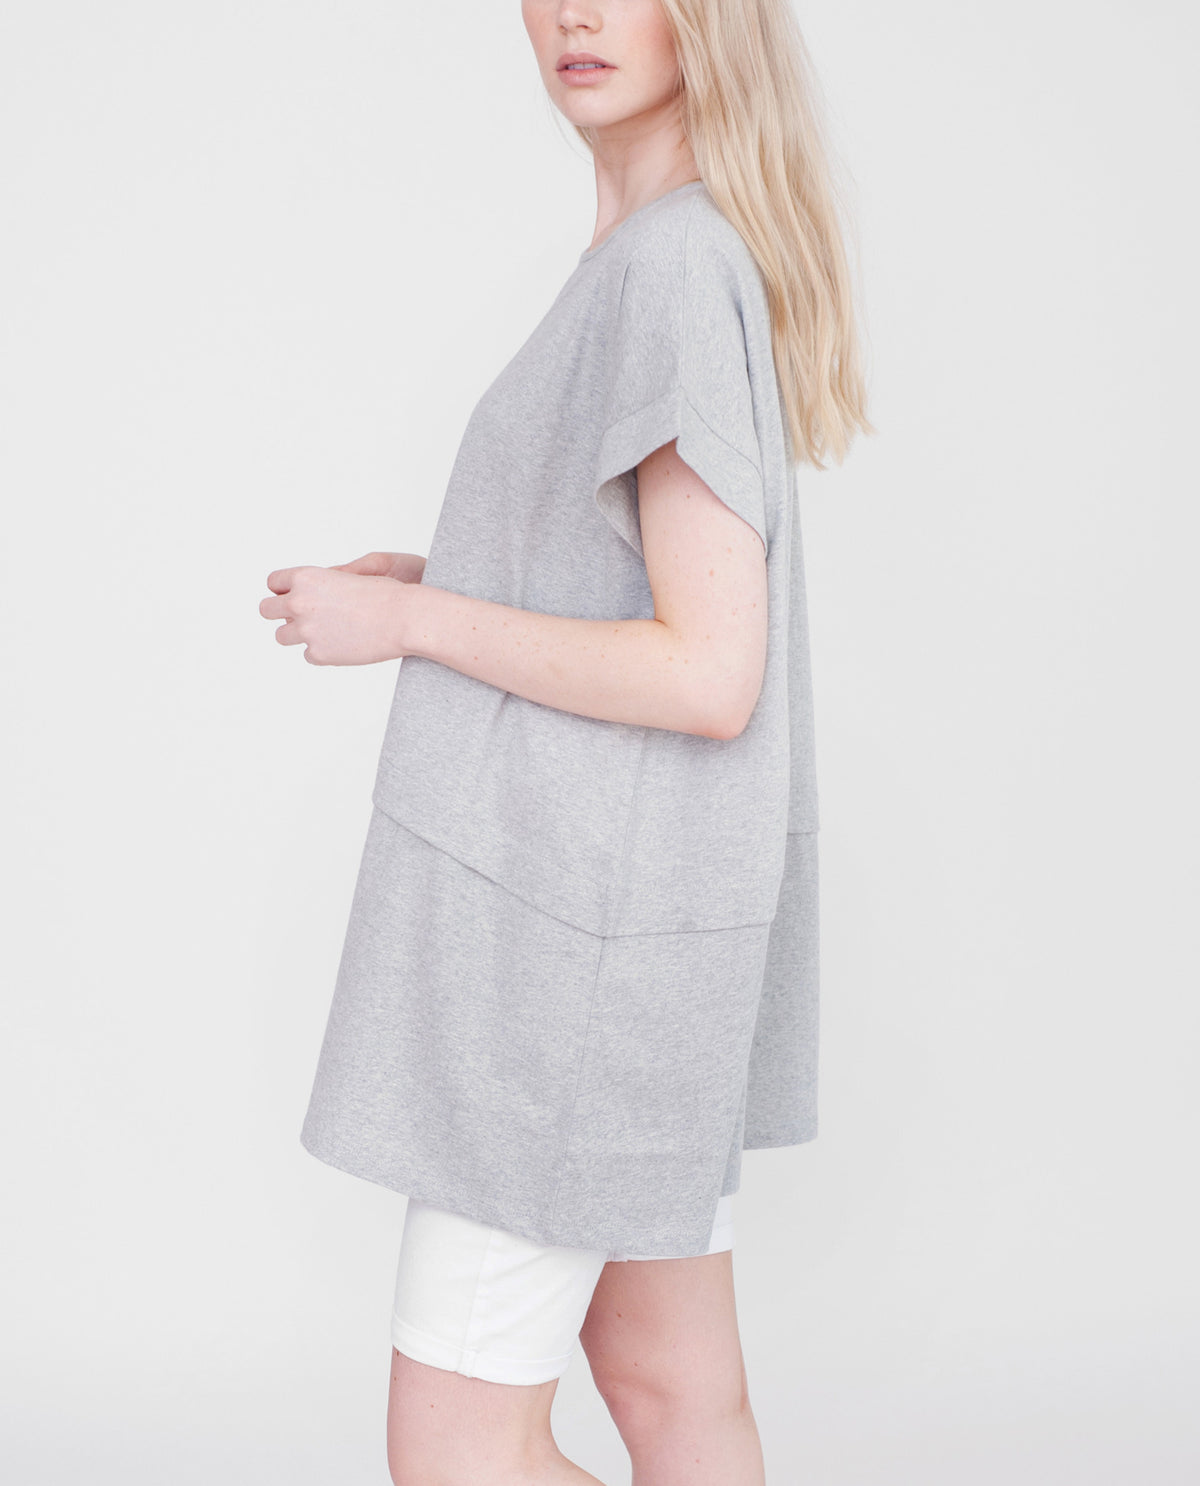 RILEY Organic Cotton Tunic Top